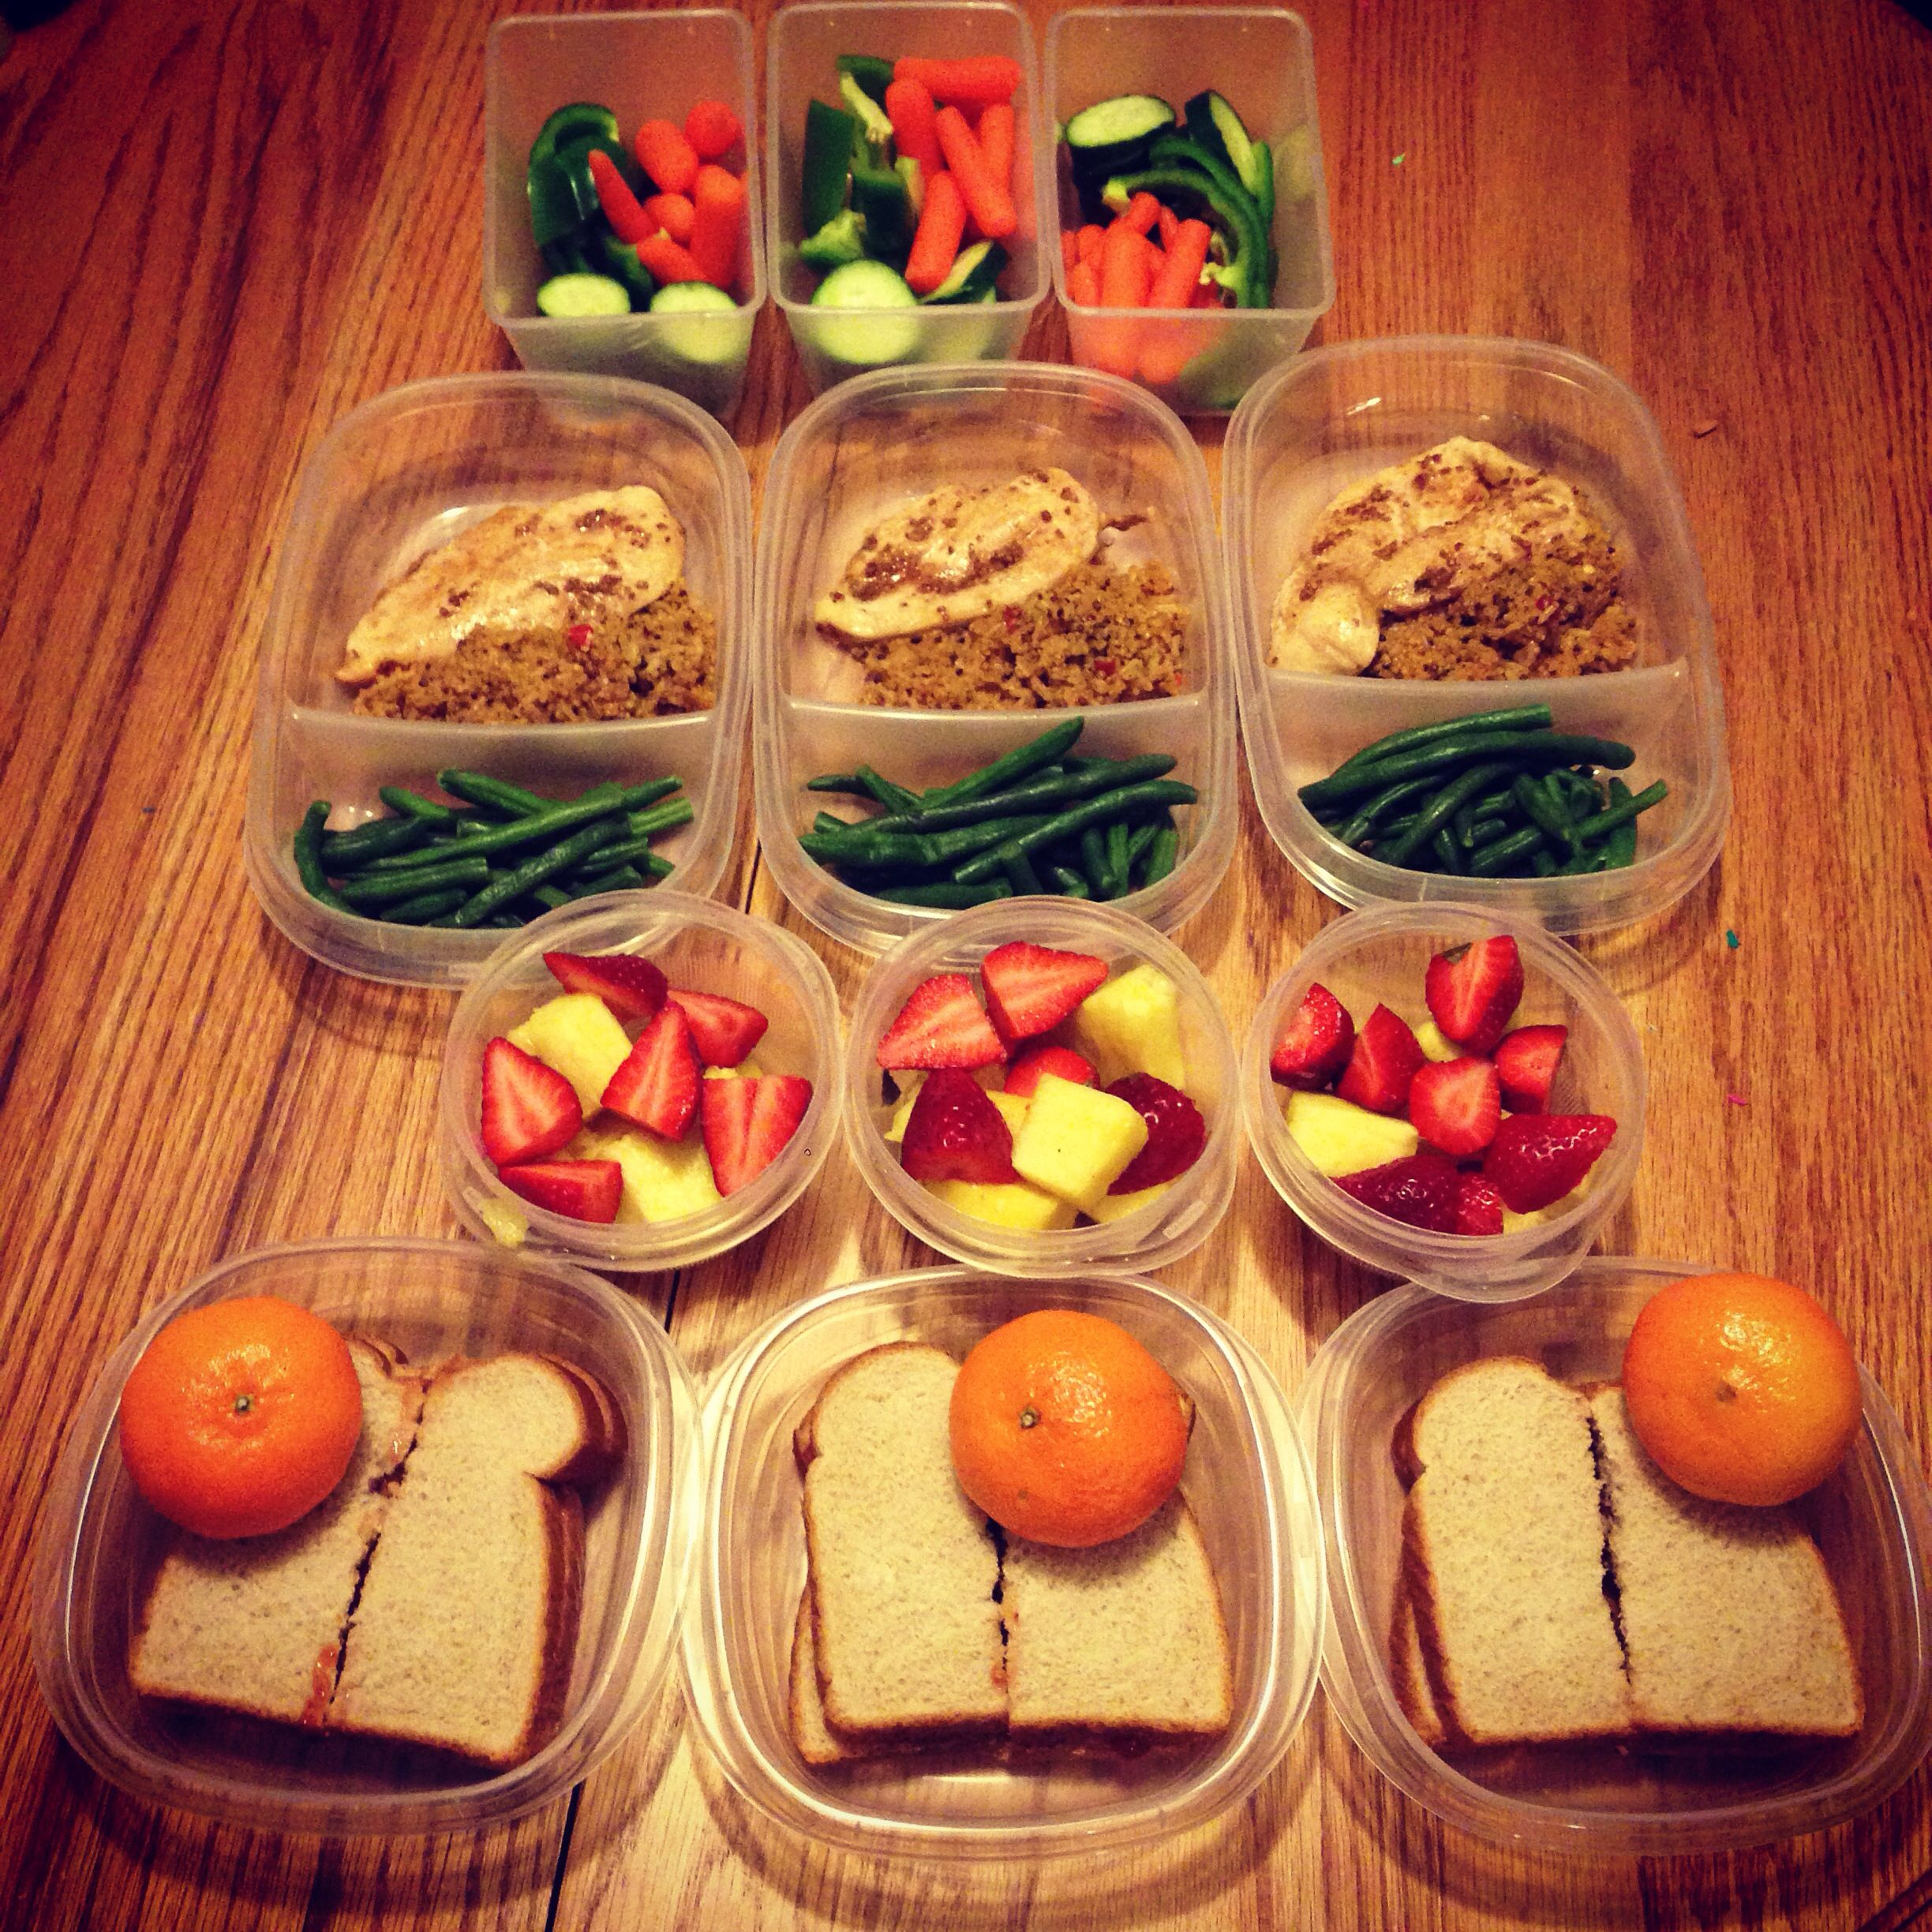 Healthy Meal-Prep Ideas From Pinterest Boards